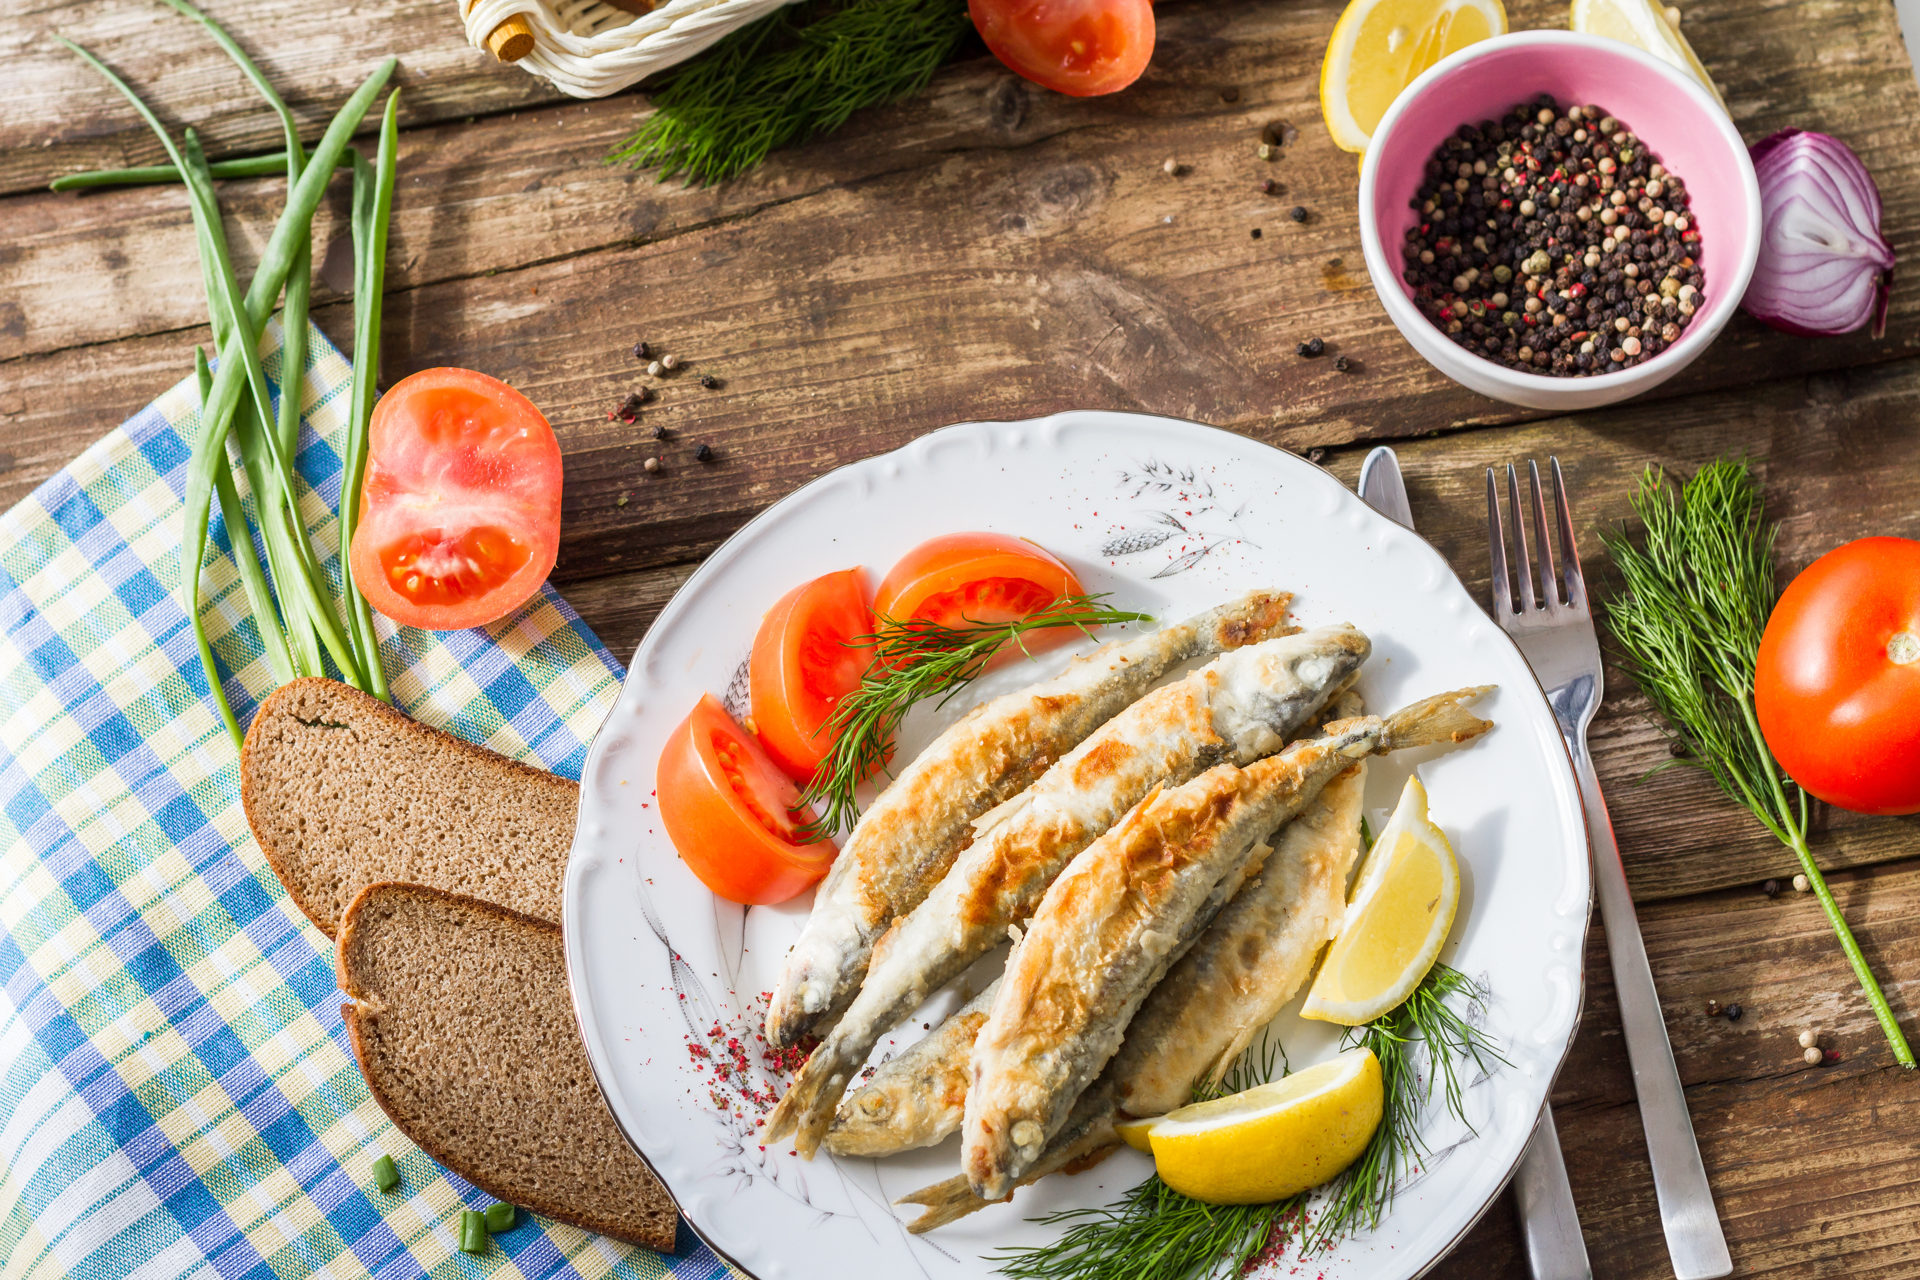 Fried fish smelt on a plate, served with lemon, tomatoes, onions and herbs